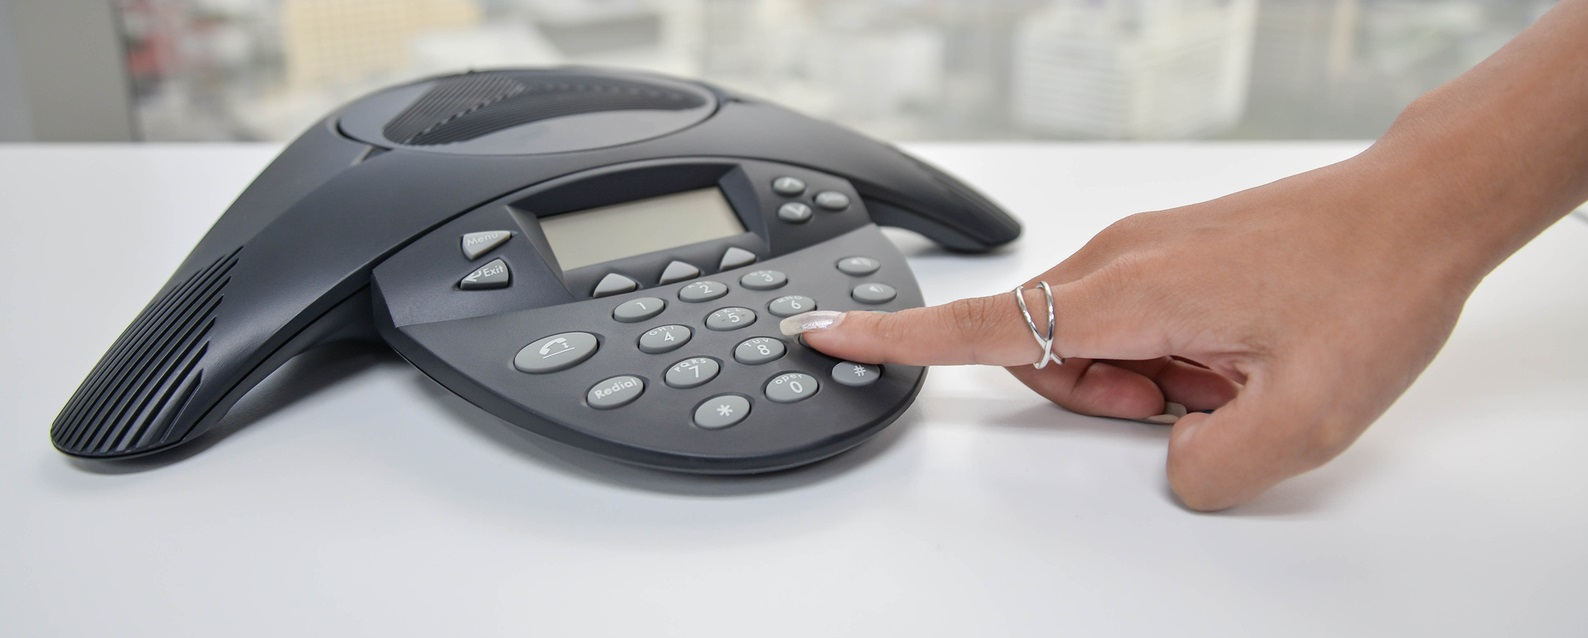 Why are VoIP Phones so Expensive?